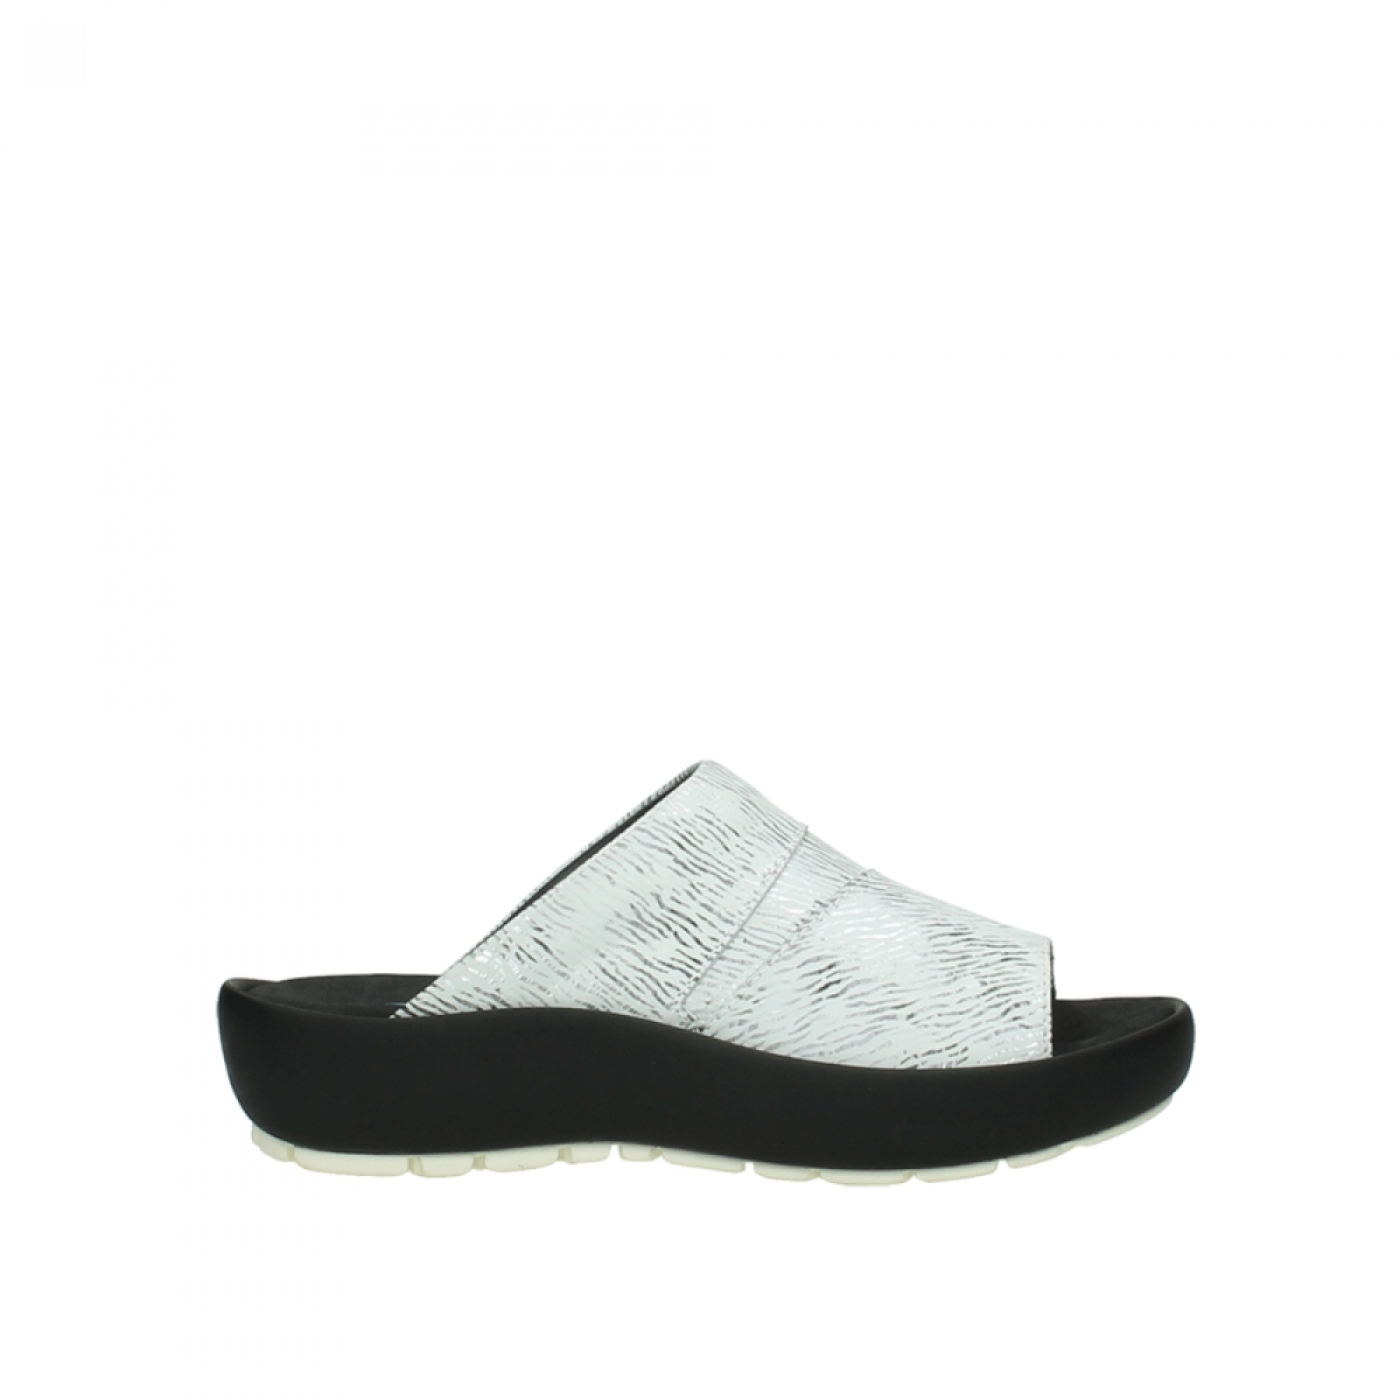 Chaussures Wolky Havana noires femme DNdkTUd7